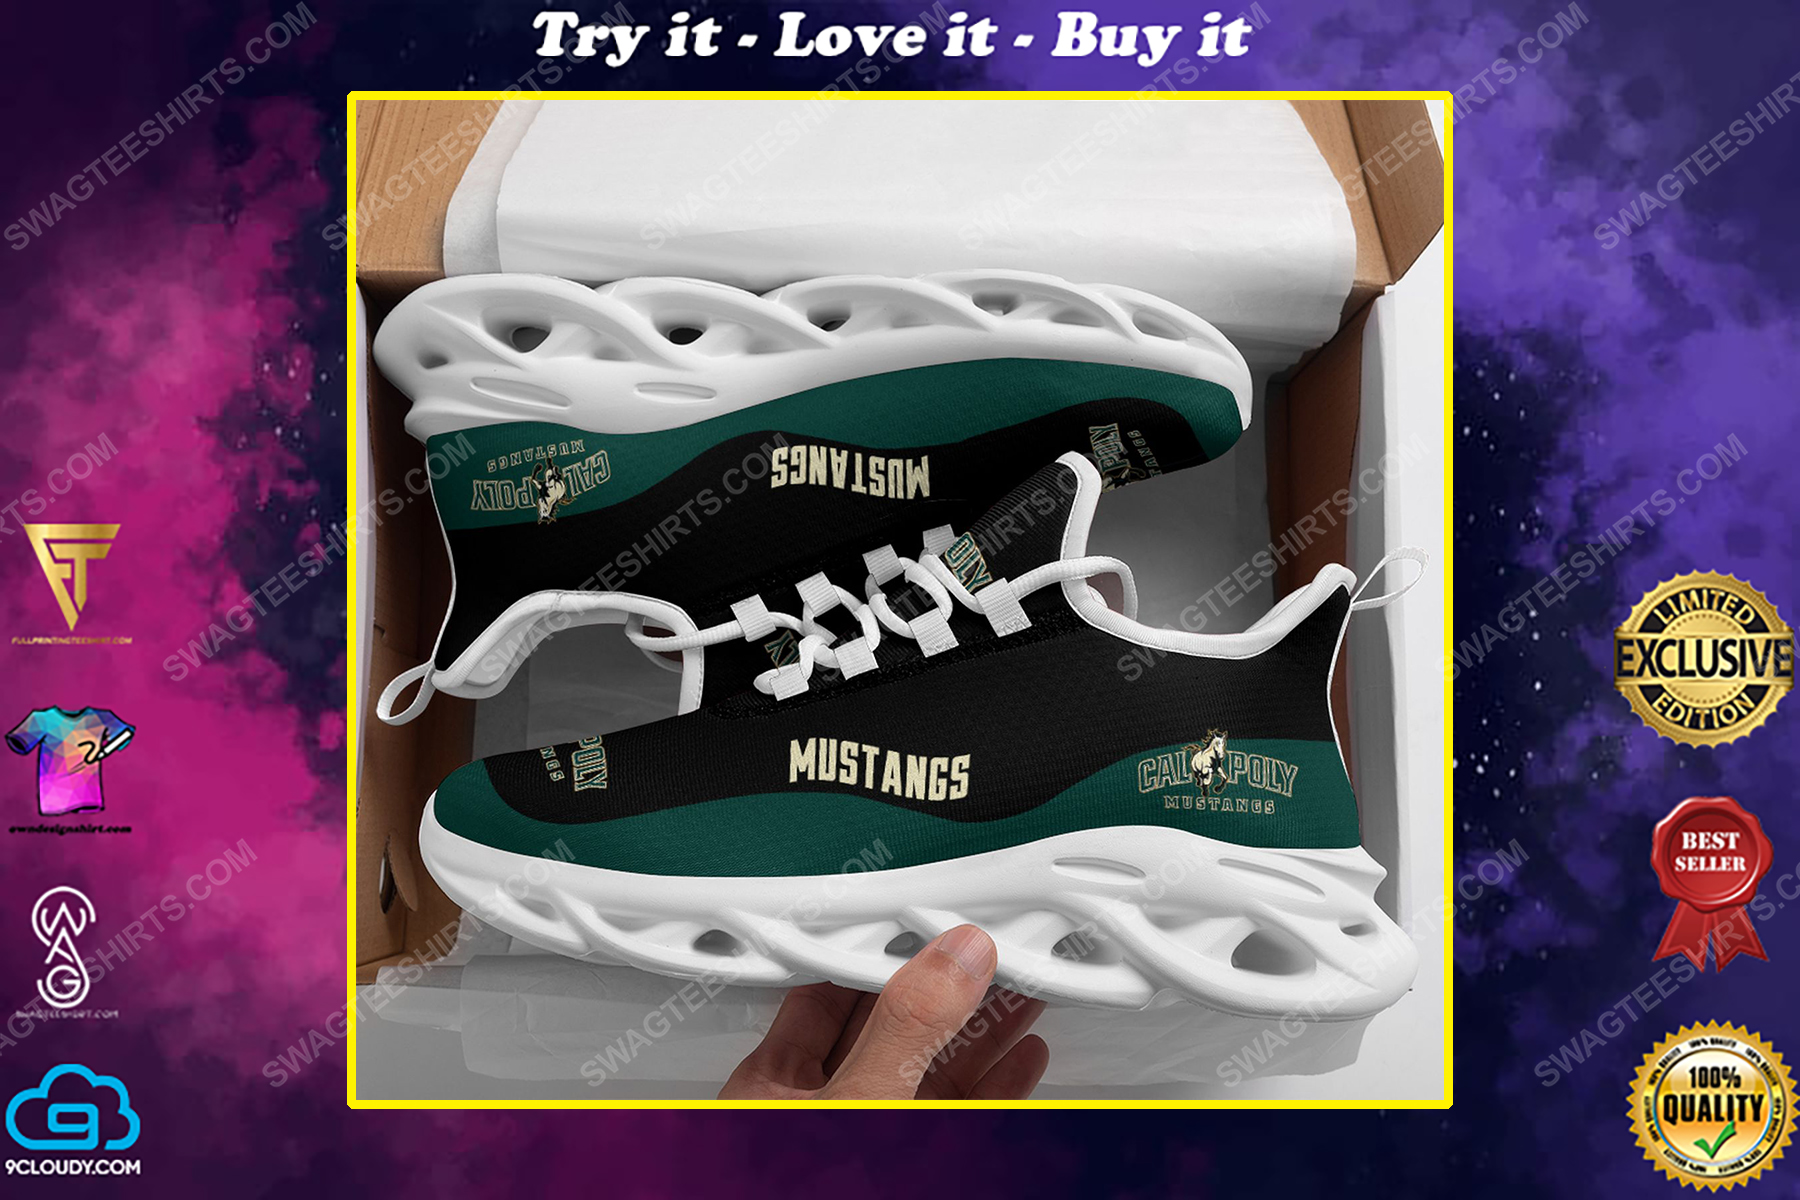 The cal poly mustangs football team max soul shoes